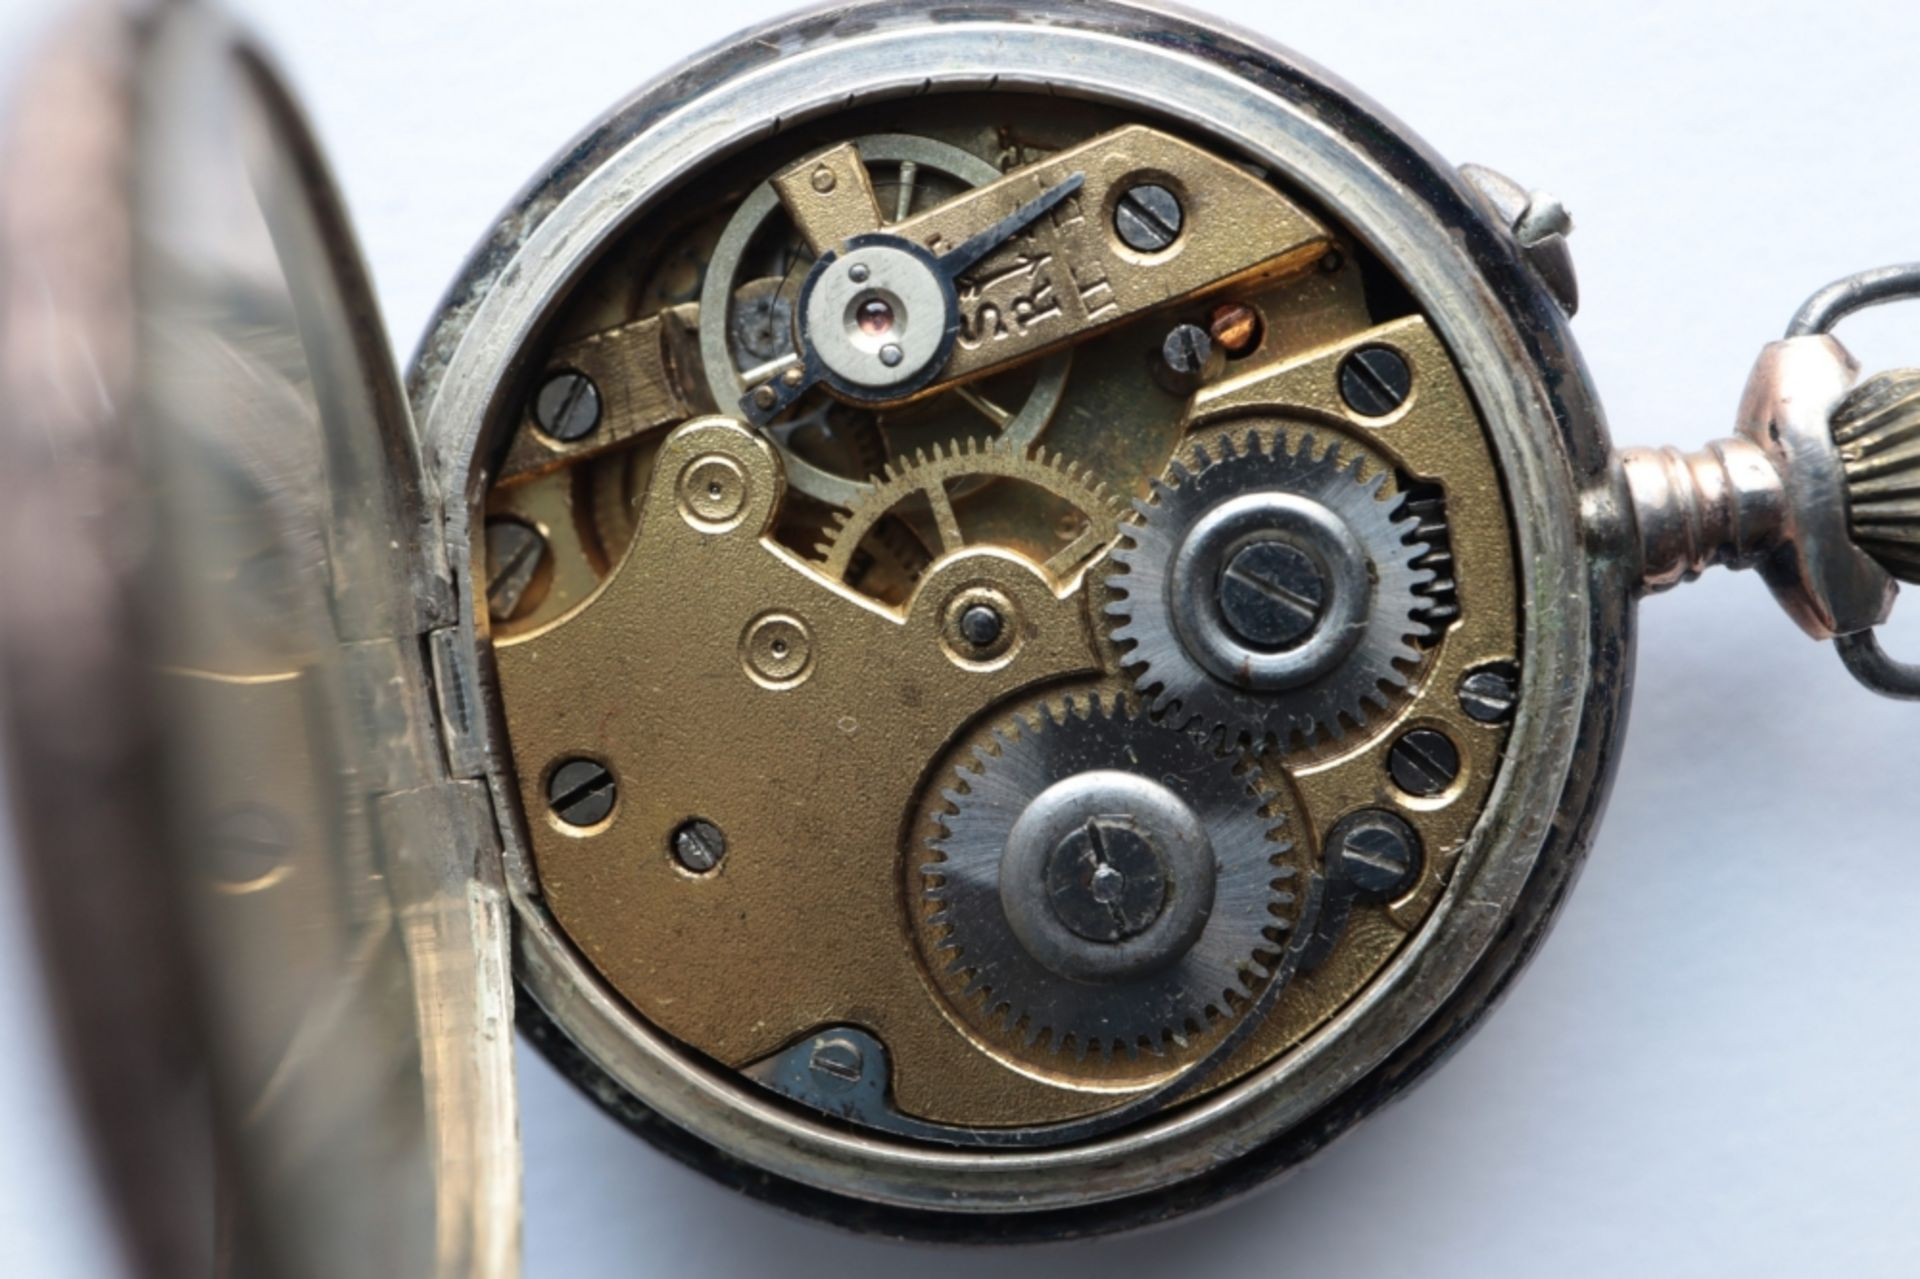 Lot of 6 watches including 4 pocket watches, a travel alarm clock and a wristwatch. - Image 4 of 7